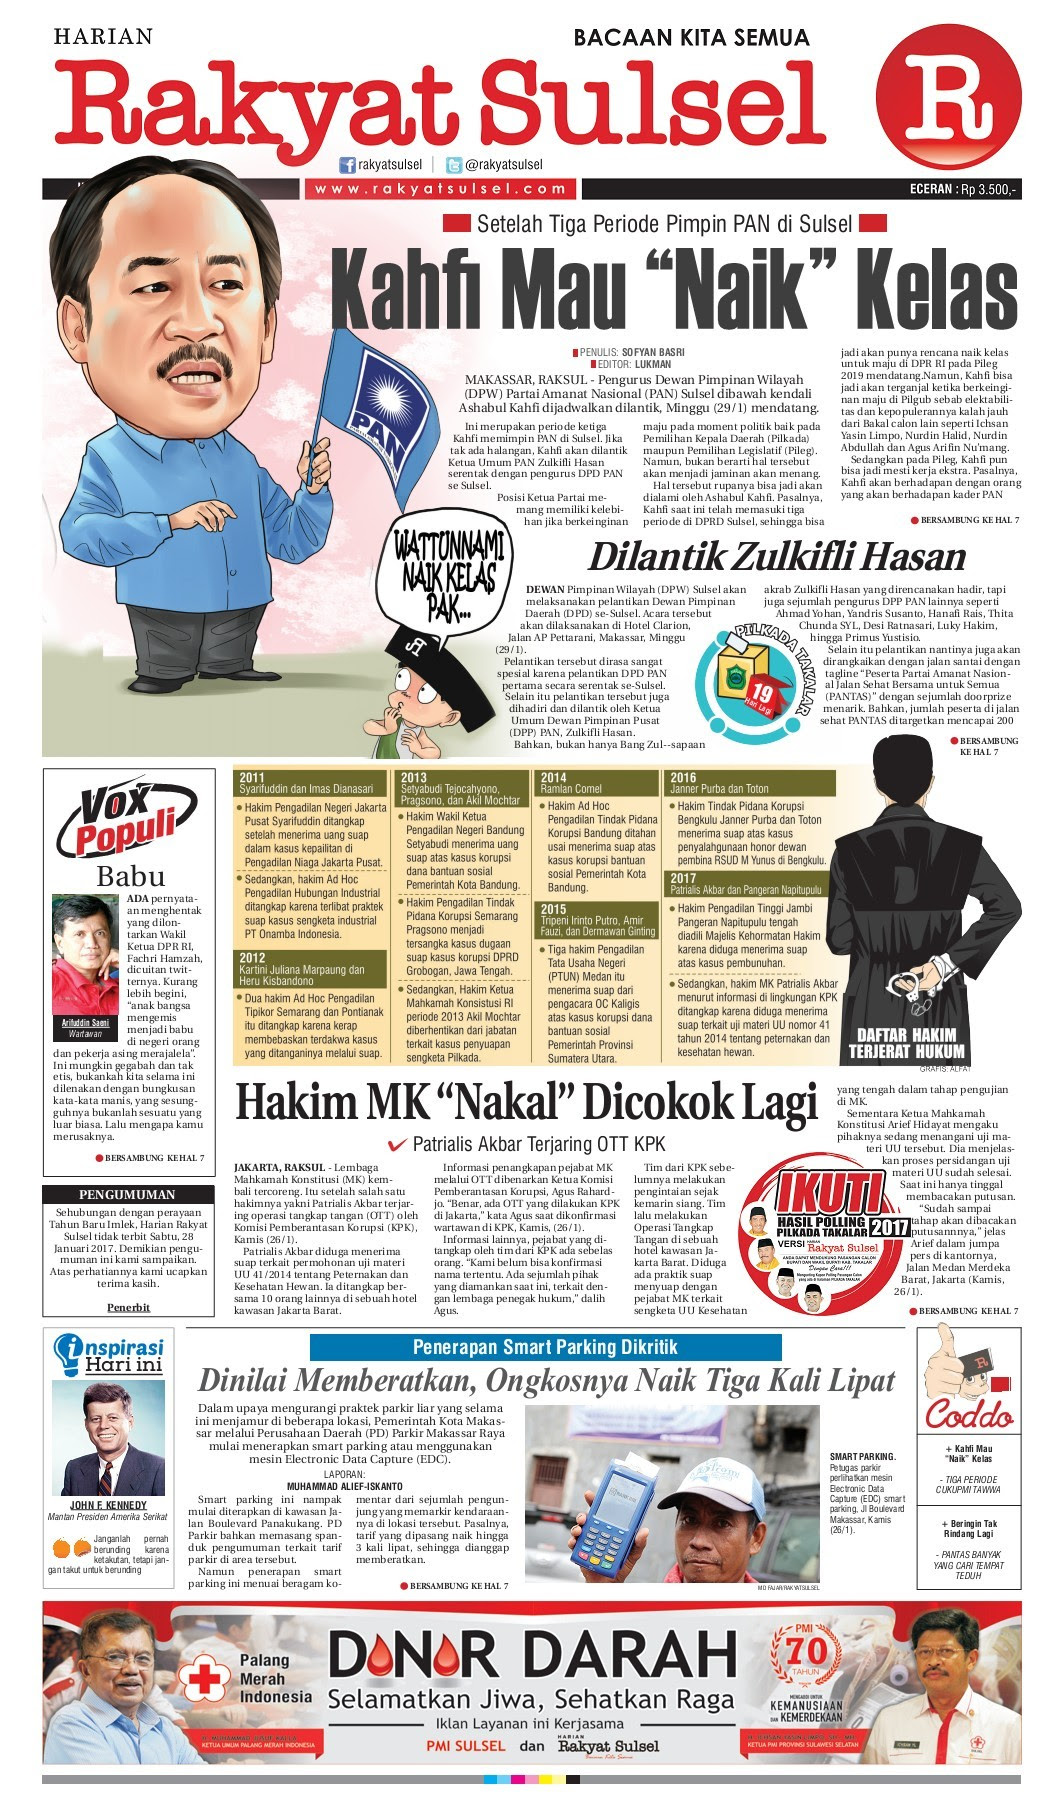 Rakyat Sulsel Jumat 27 Januari 2017 Pages 1 16 Text Version